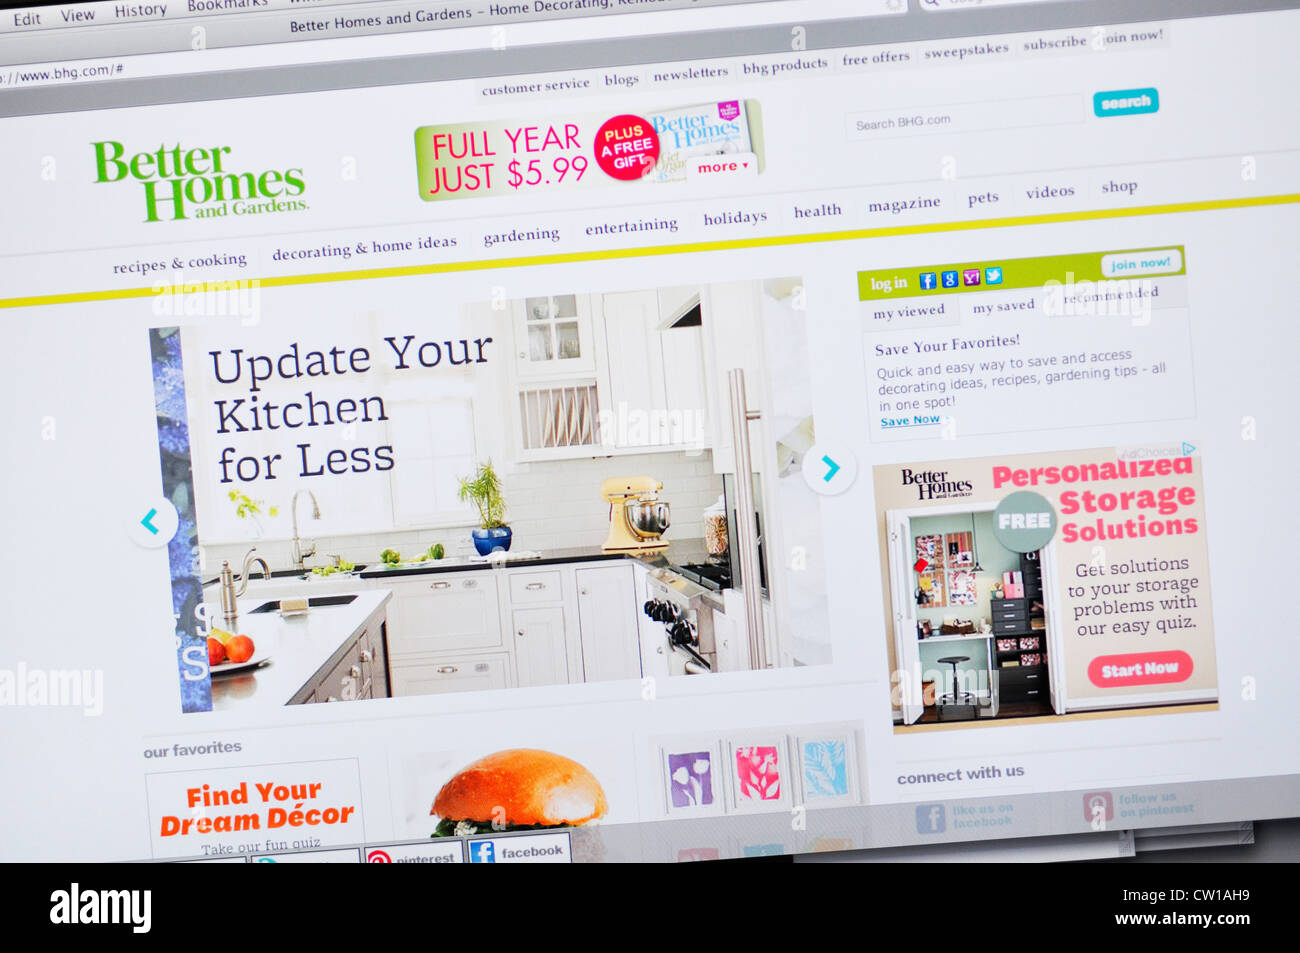 Better Homes And Gardens Website   Stock Image